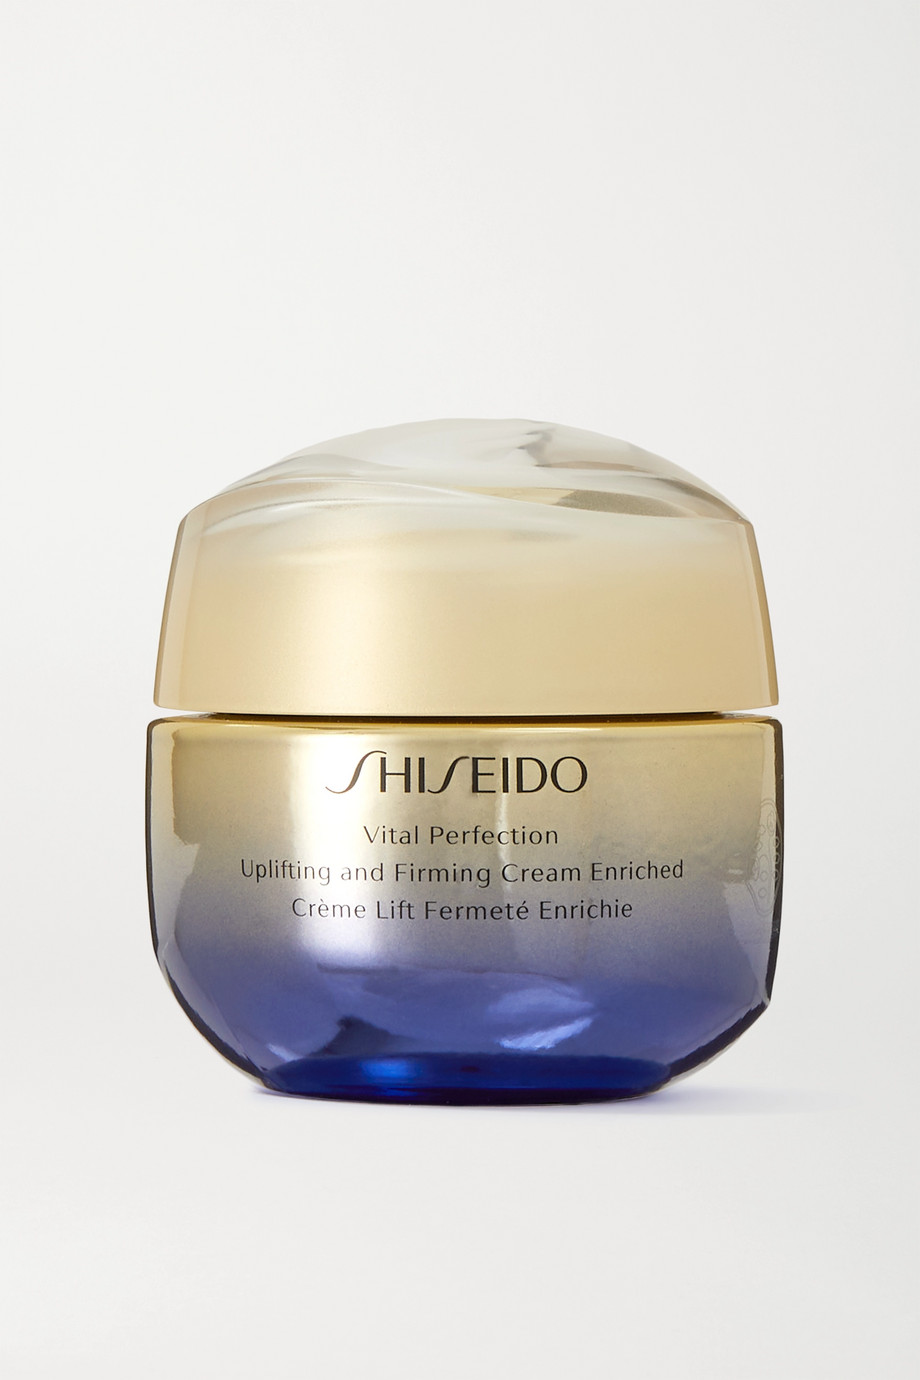 Shiseido Vital Perfection Uplifting and Firming Cream Enriched, 50 ml – Gesichtscreme